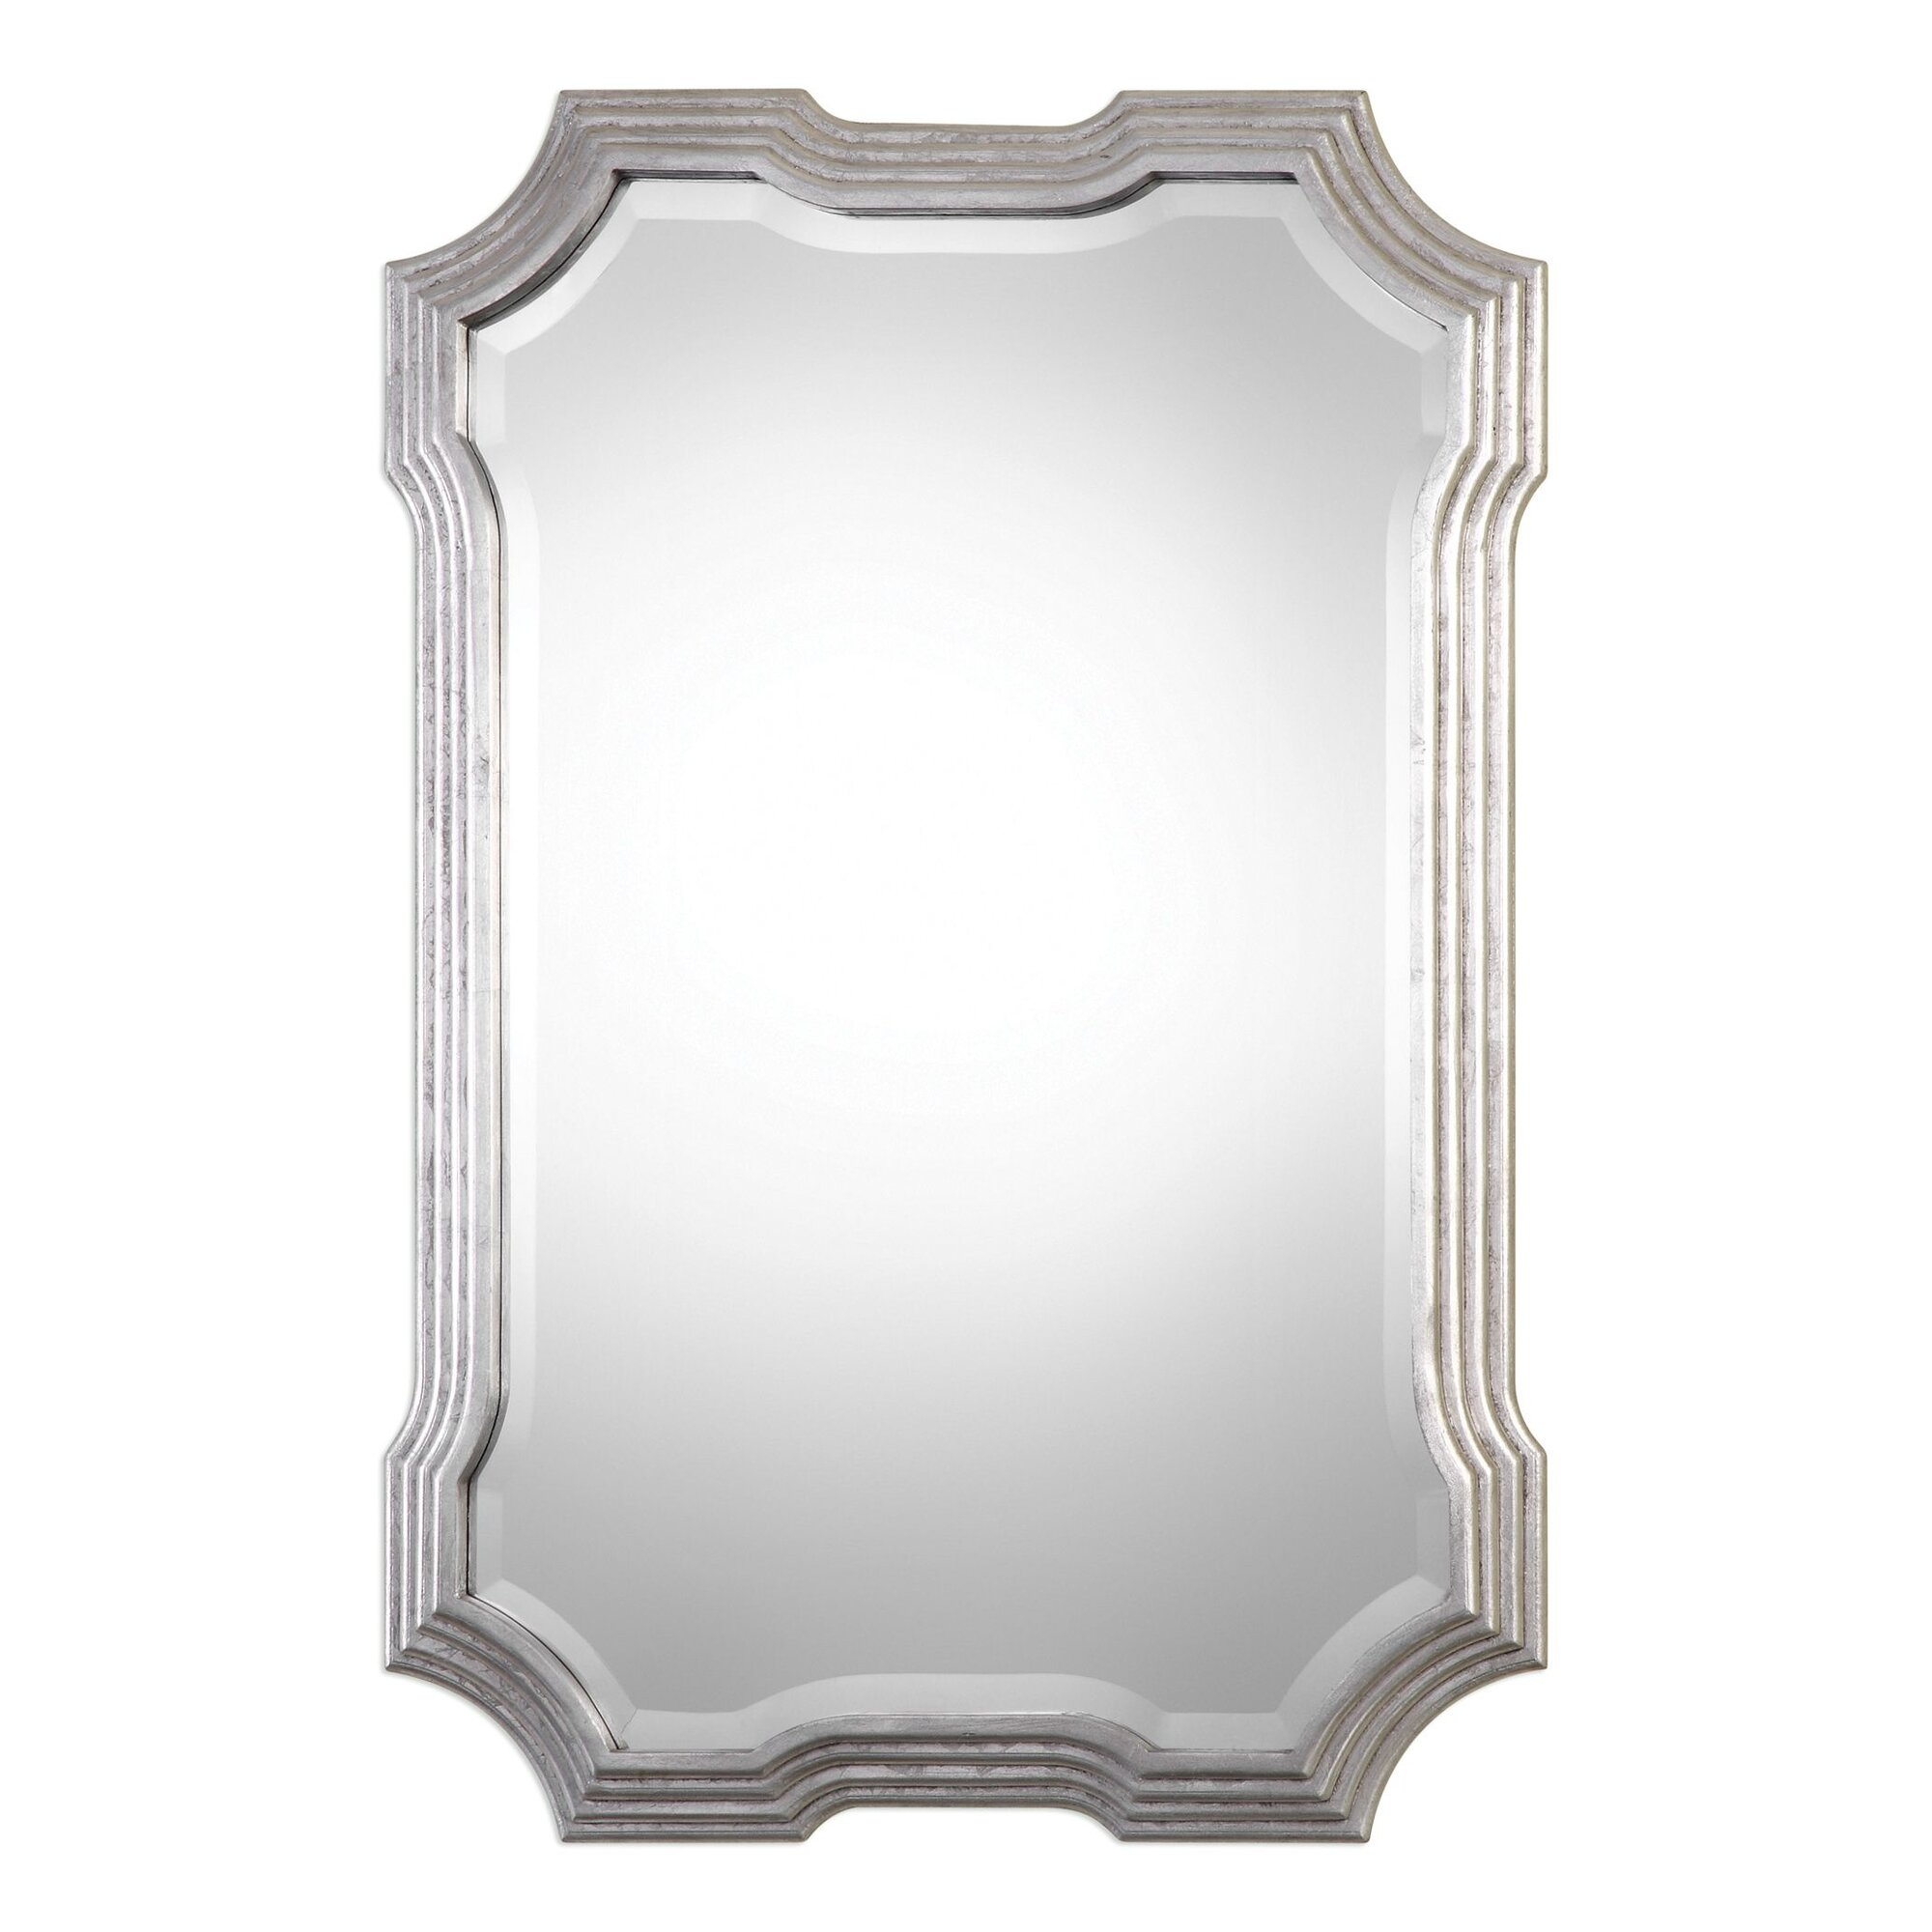 Willa Arlo Interiors Bevel Wall Mirror Reviews